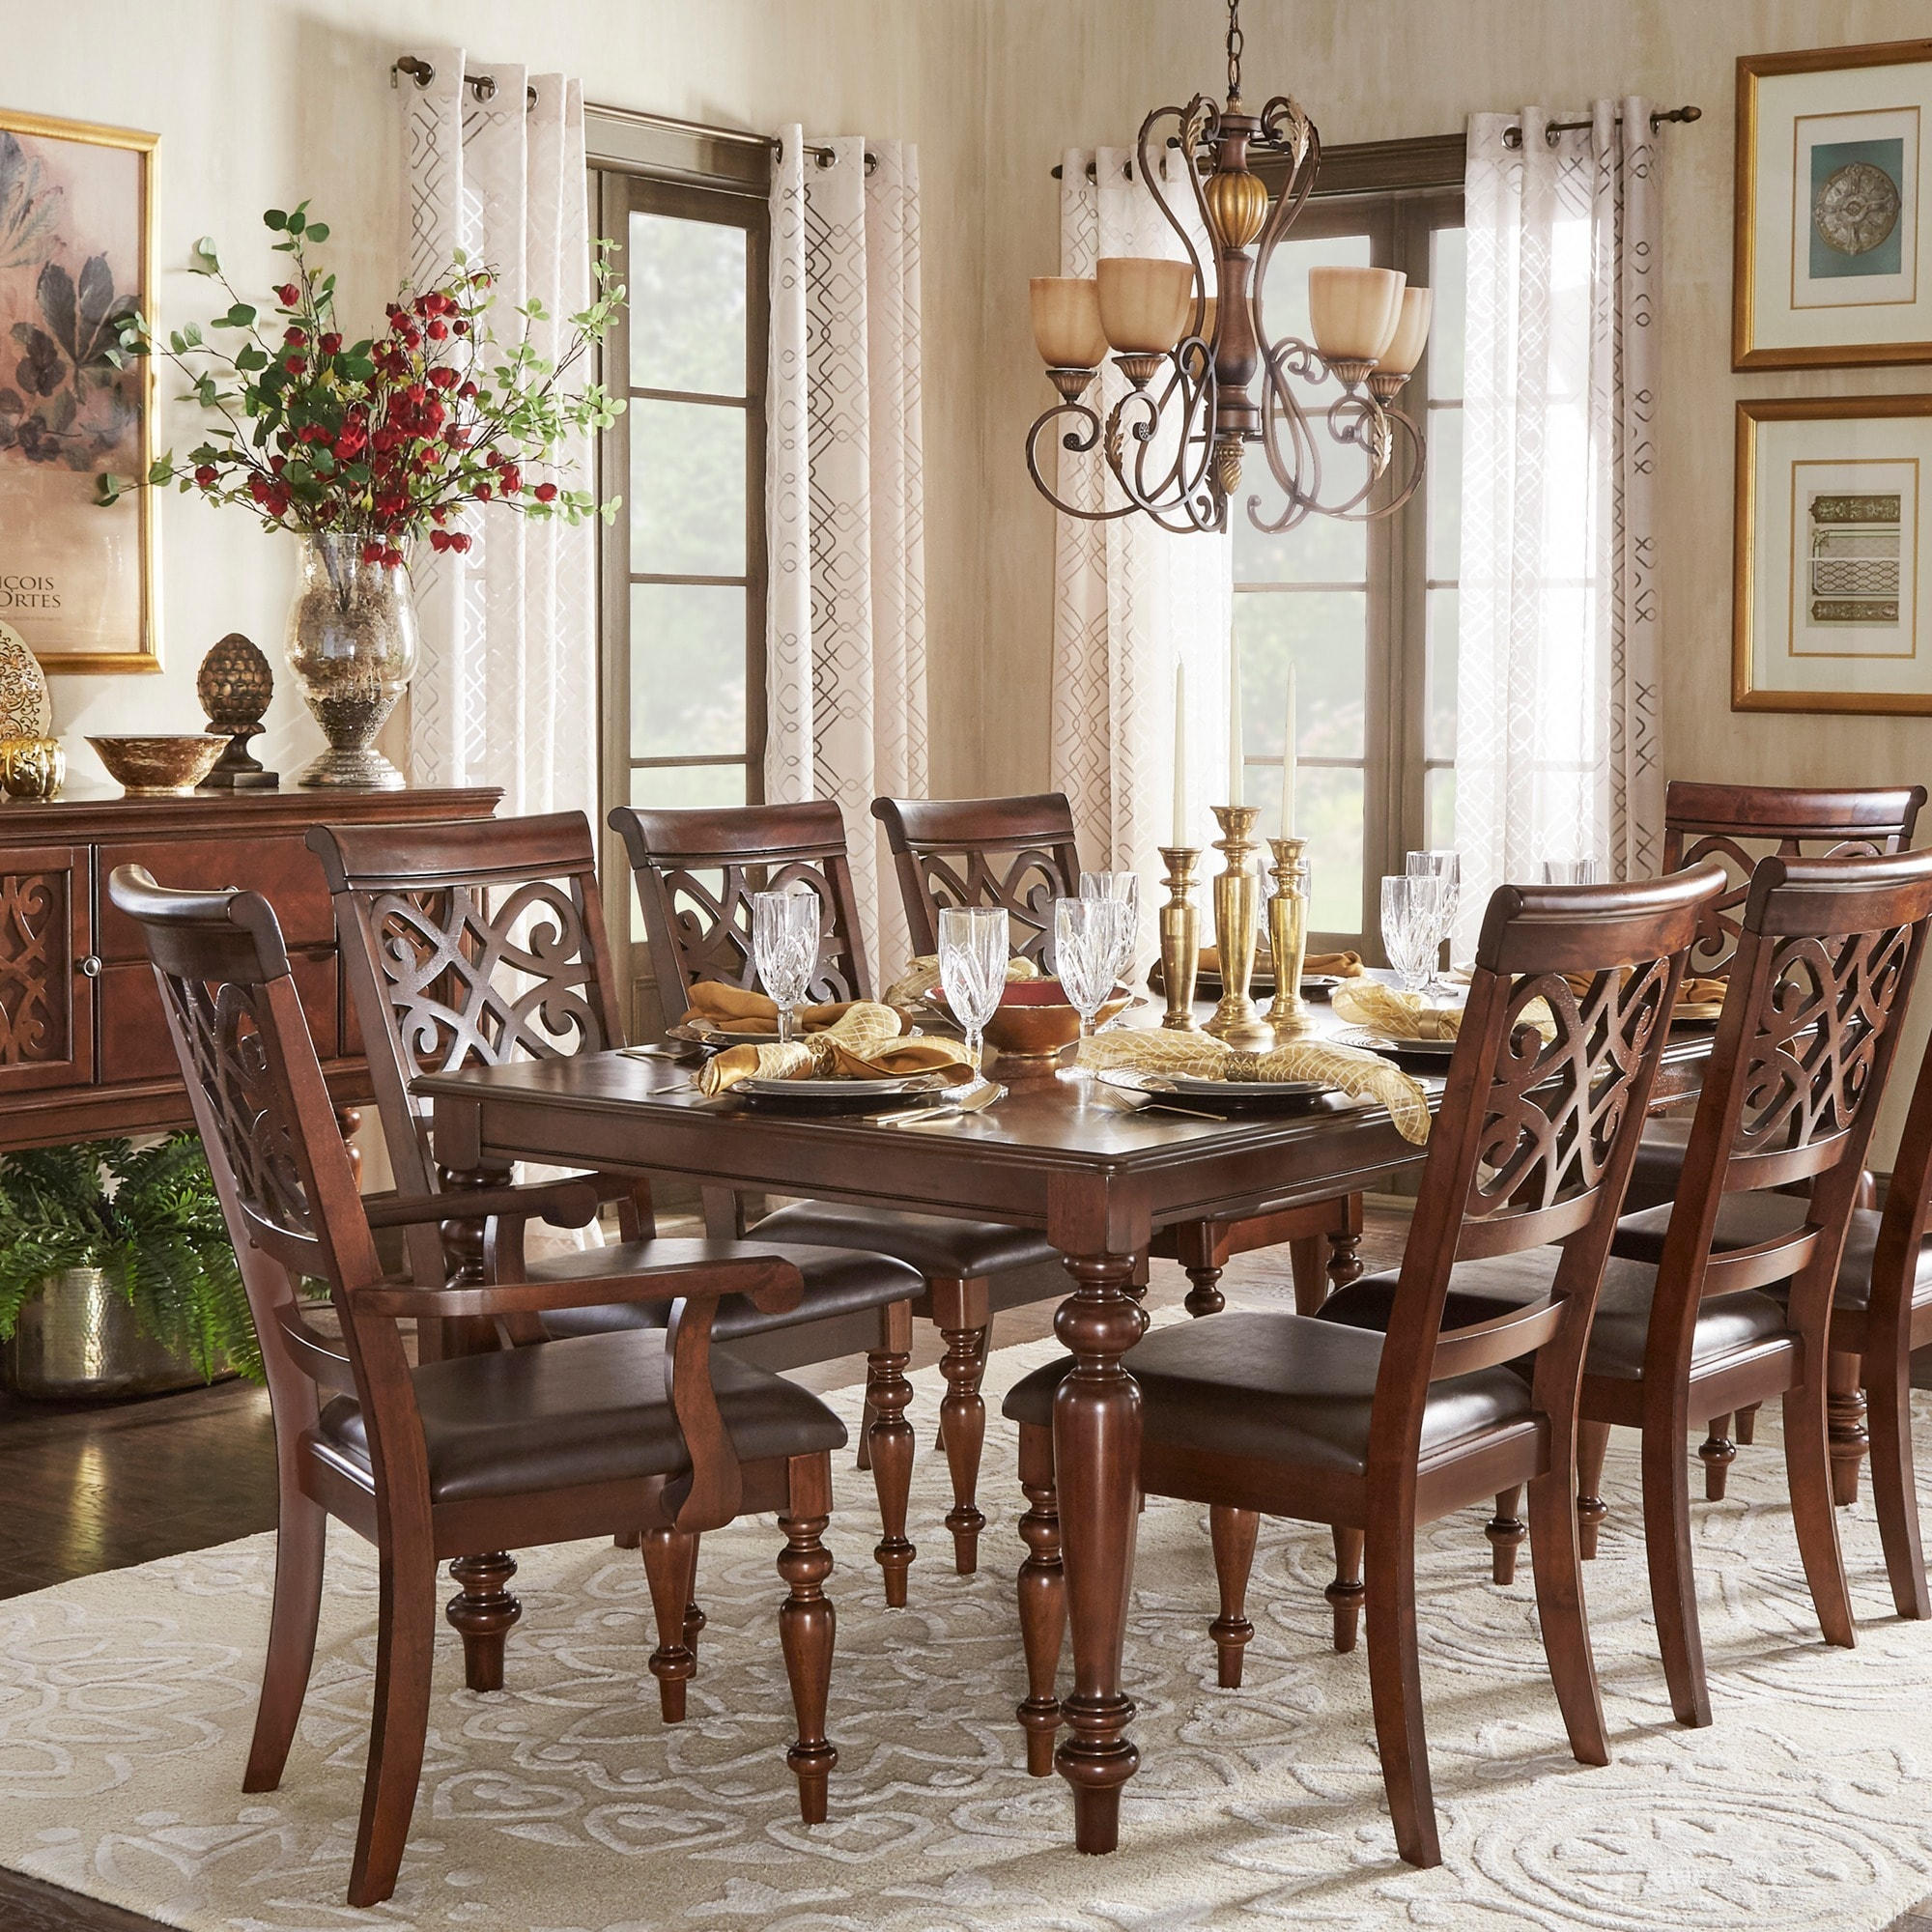 Emma-Catherine-Cherry-Extending-Dining-Set-by-iNSPIRE-